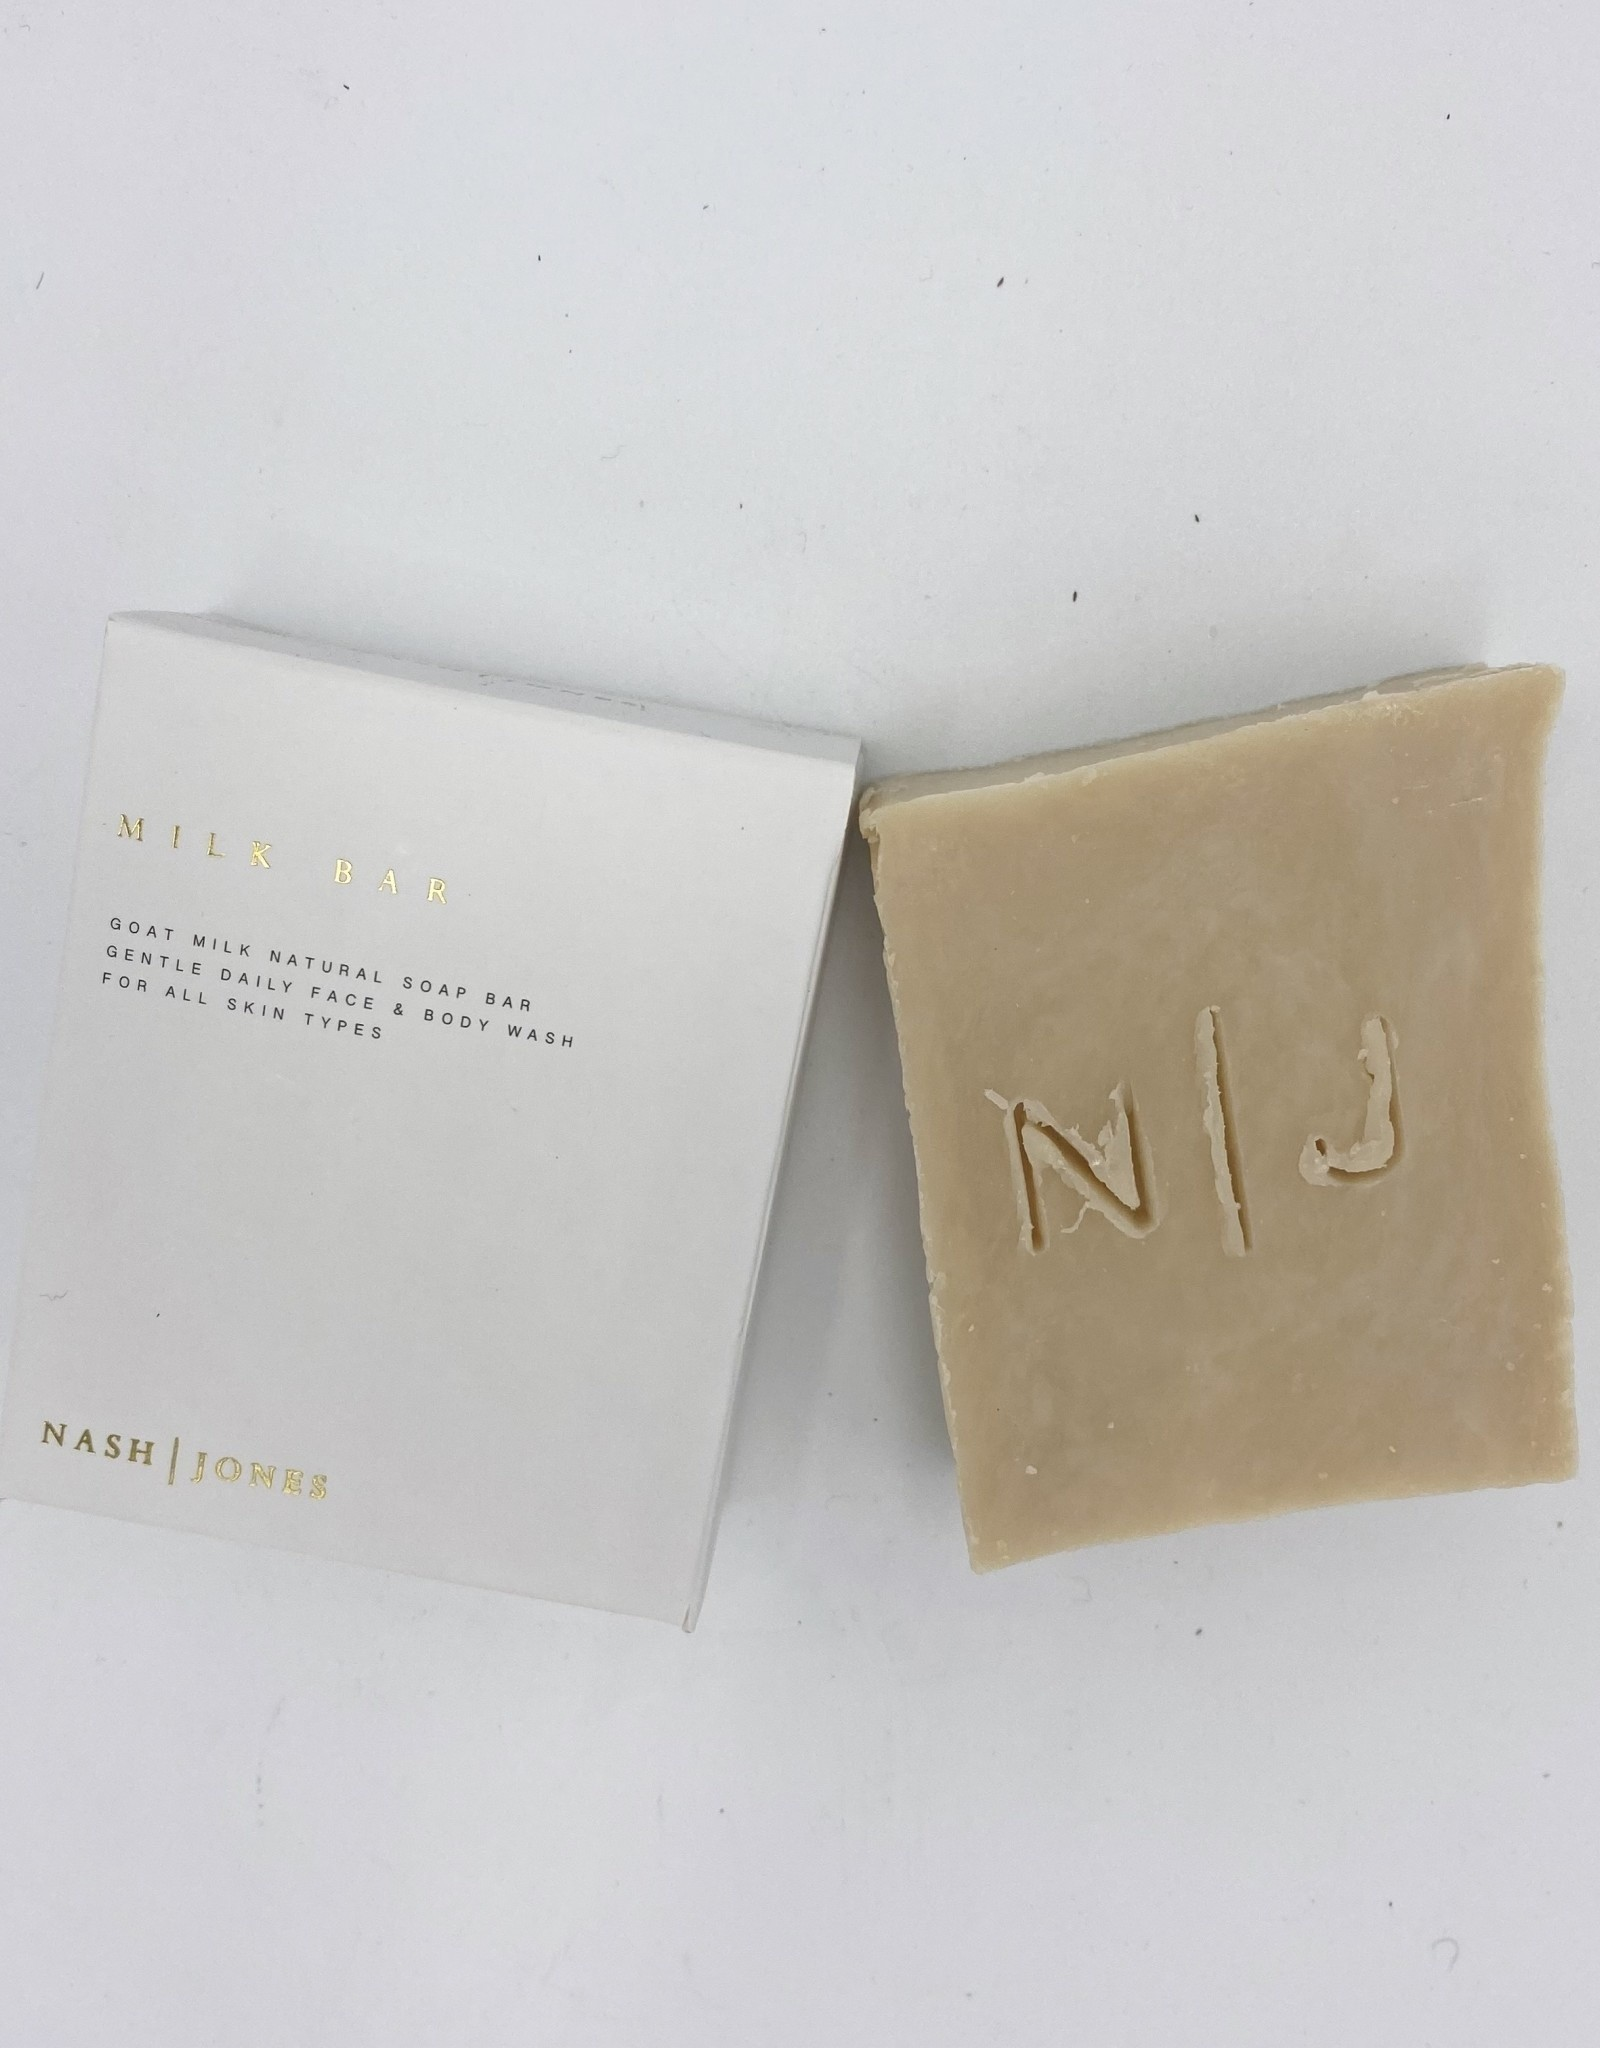 Nash and Jones Milk Bar Soap